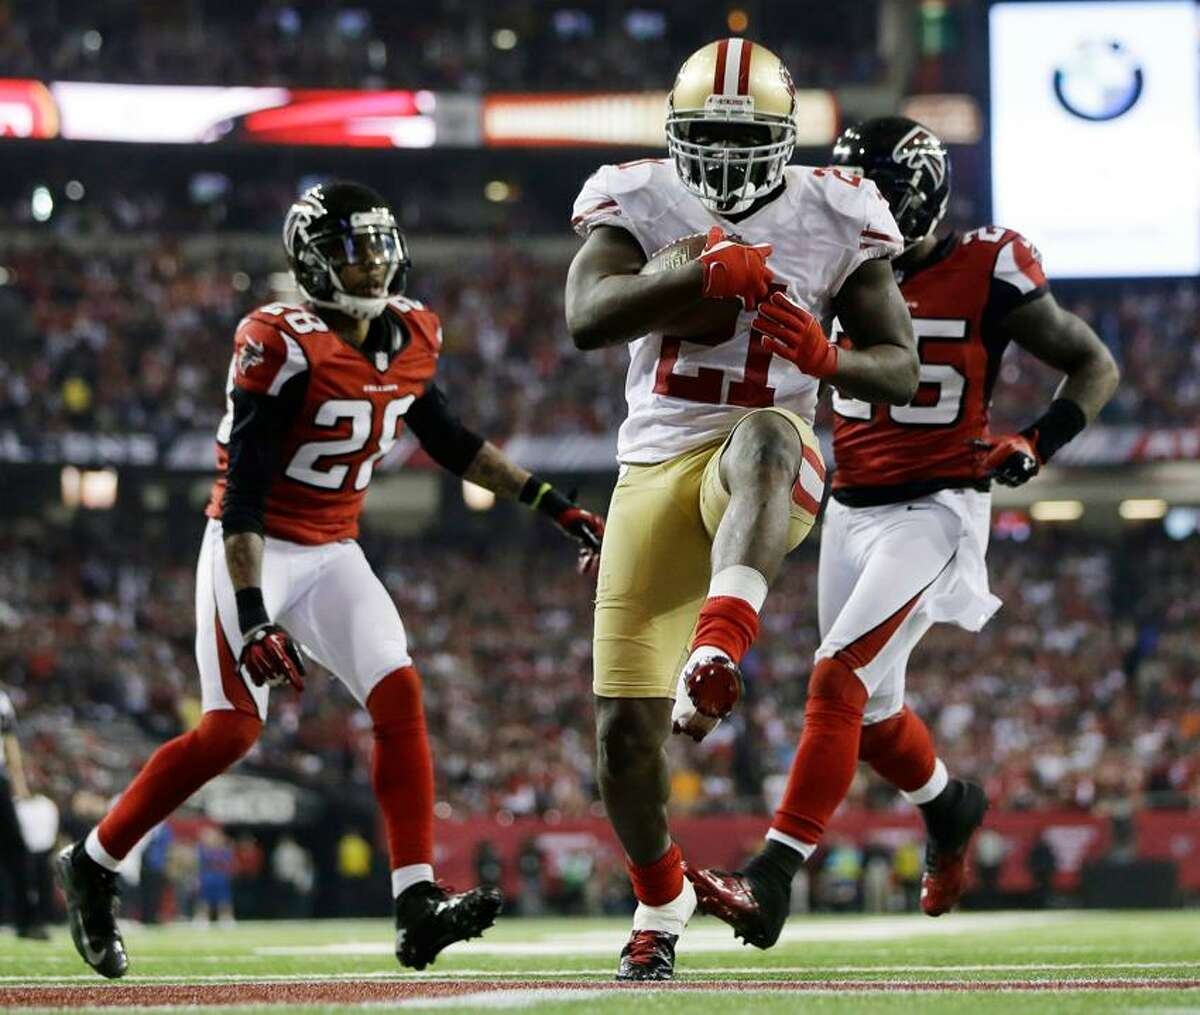 San Francisco 49ers' Frank Gore (21) breaks away for a nine-yard touchdown run during the second half of the NFL football NFC Championship game against the San Francisco 49ers Sunday, Jan. 20, 2013, in Atlanta. (AP Photo/David Goldman)